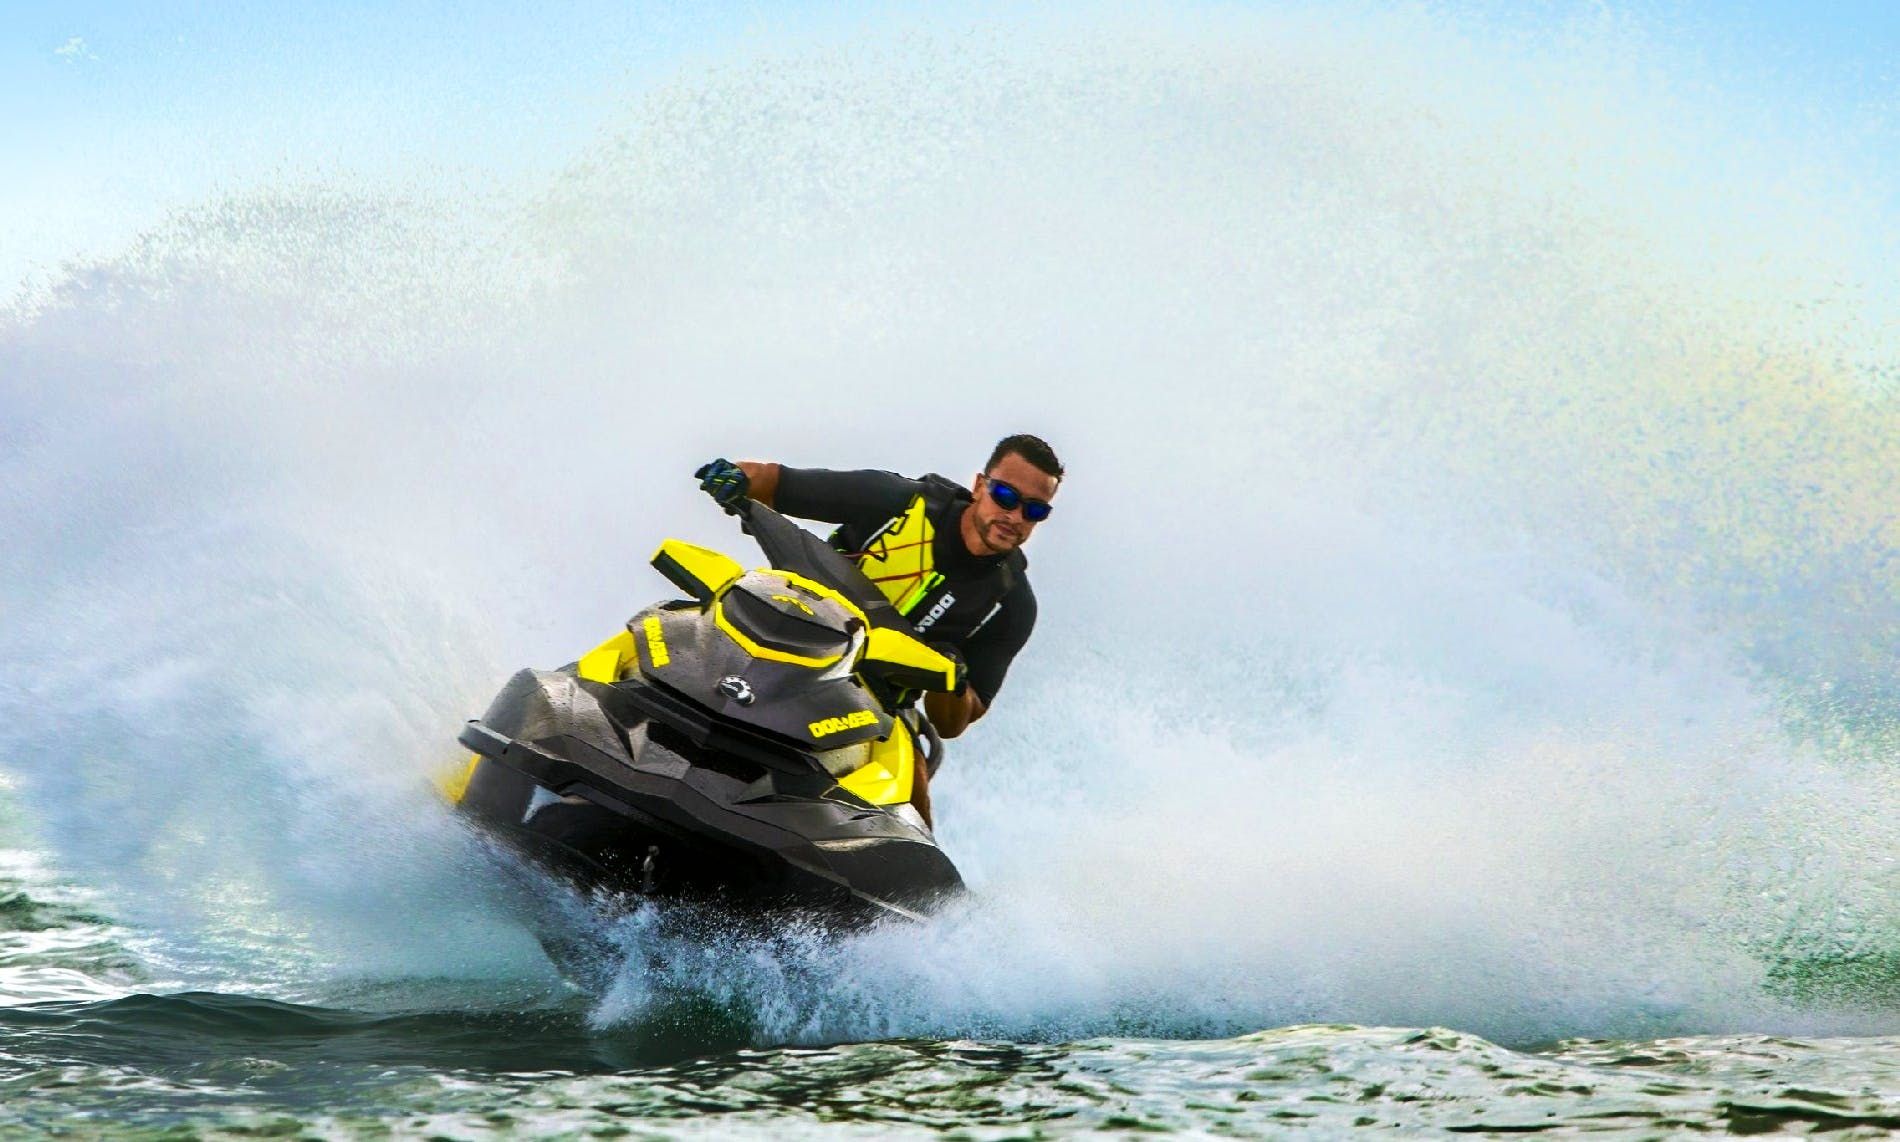 Rent a Seadoo Jet Ski in Għajnsielem, Malta for 1 person